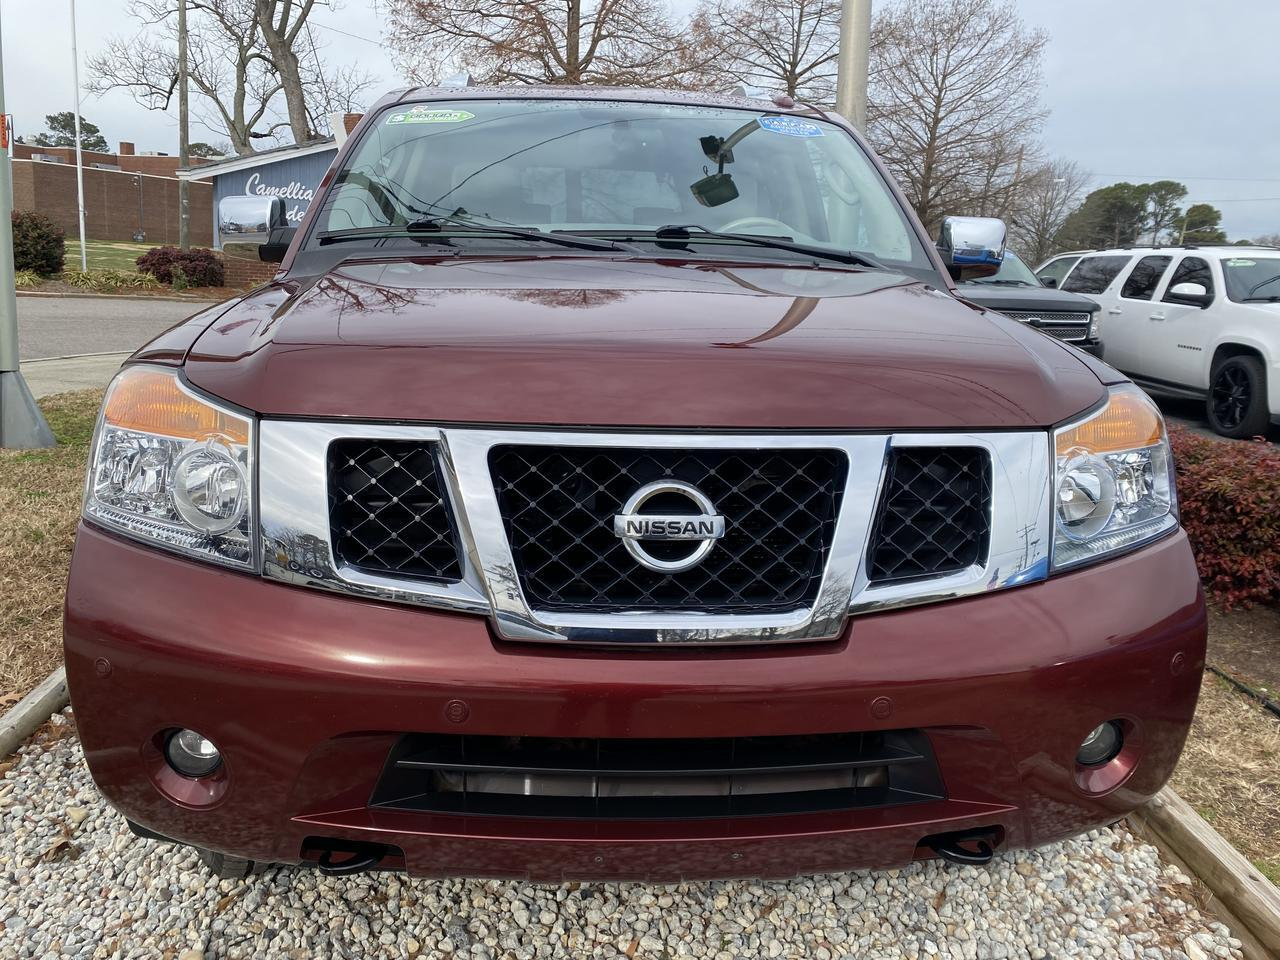 2010 NISSAN ARMADA PLATINUM 4X4, WARRANTY, LEATHER, NAV, HEATED/COOLED SEATS, DVD PLAYER, 3RD ROW, 1 OWNER, CLEAN! Norfolk VA